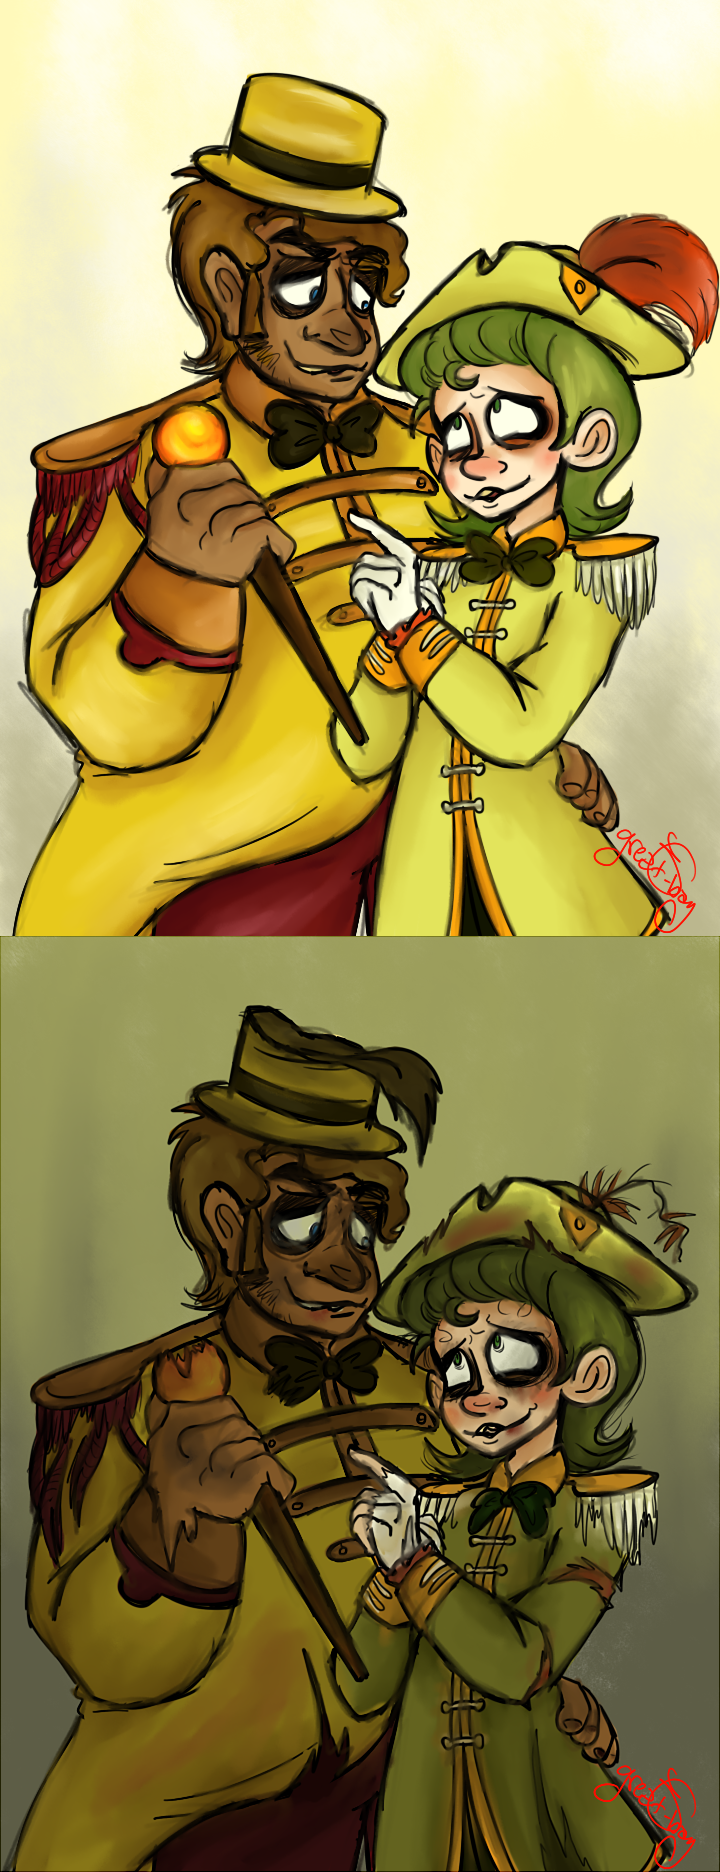 Golden freddy and springtrap by yerblues99 on deviantart